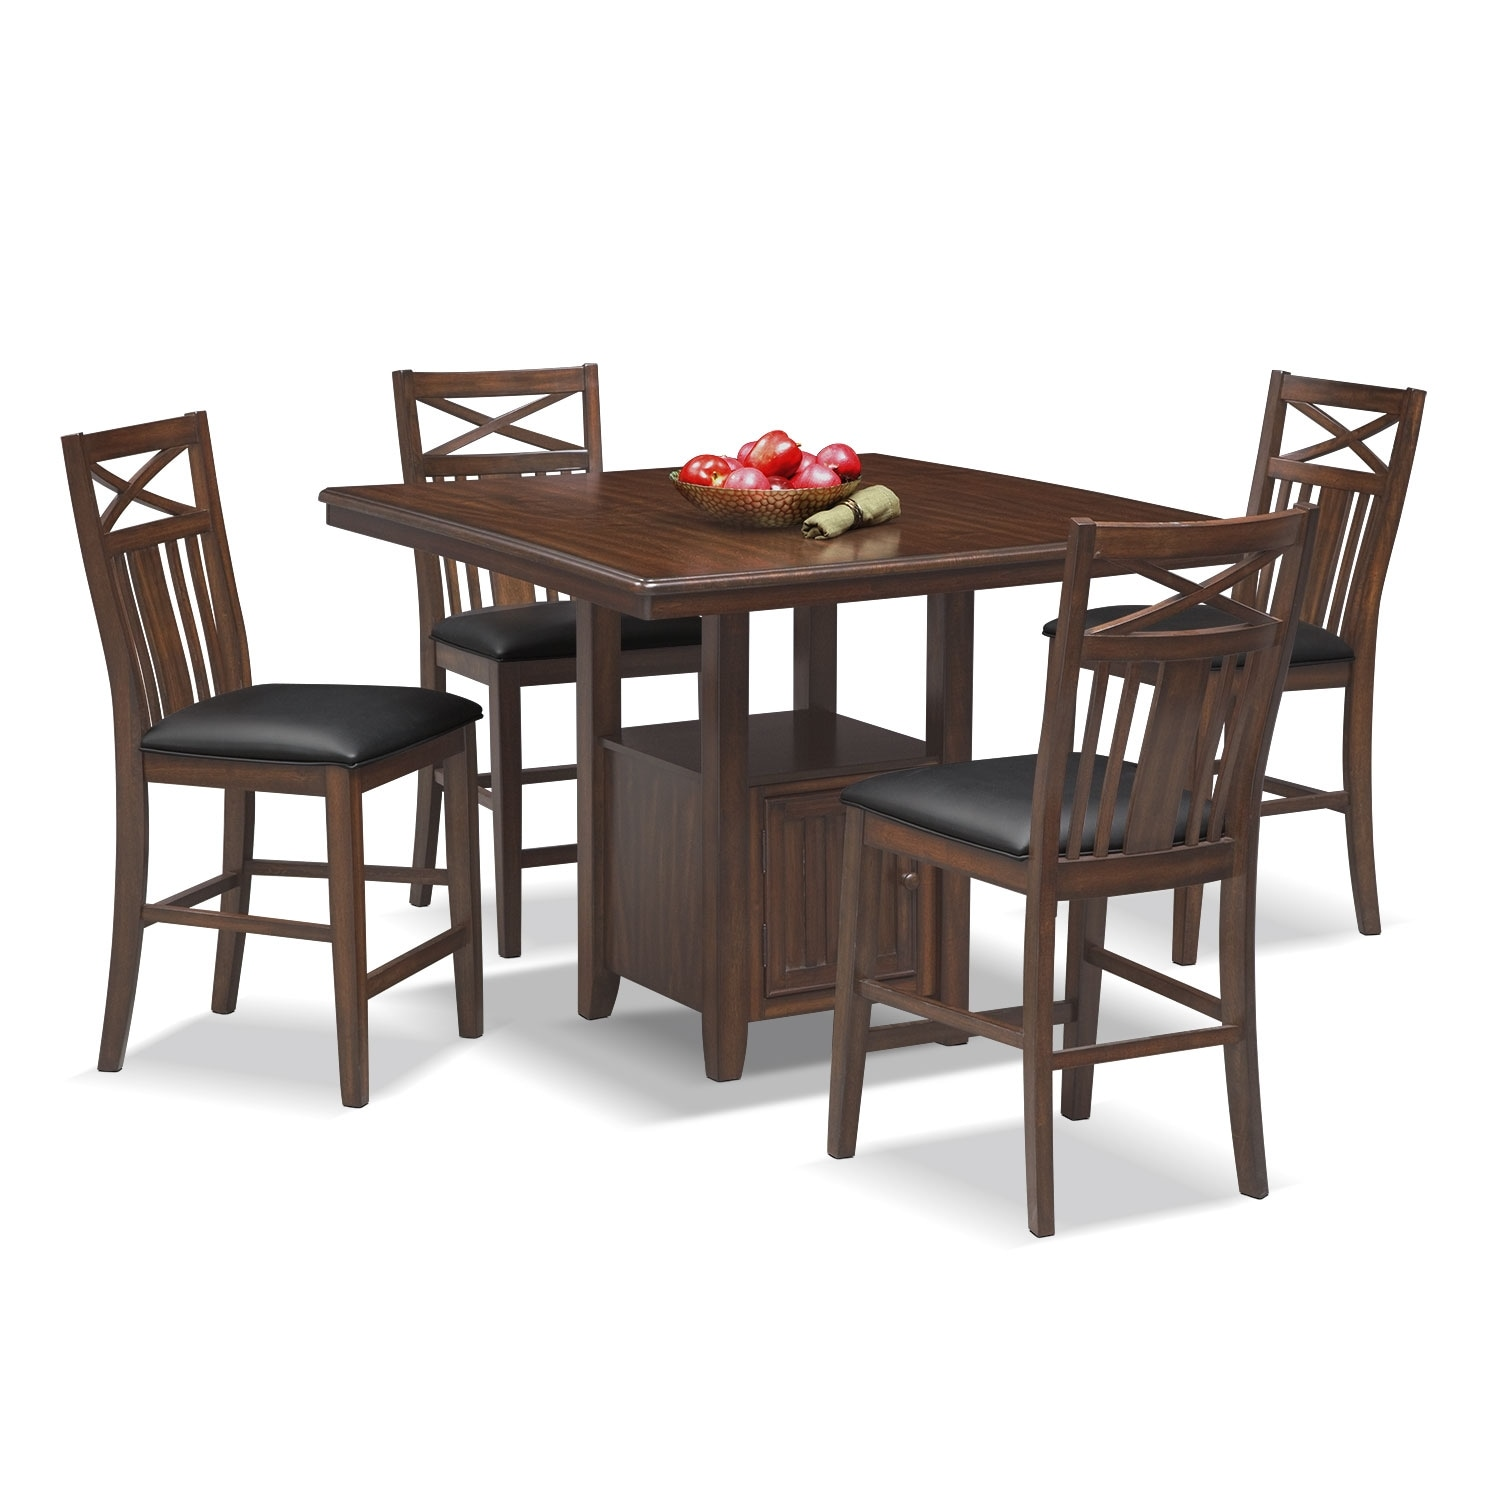 Dining Room Furniture - Natchez Trail 5 Pc. Counter-Height Dining Room